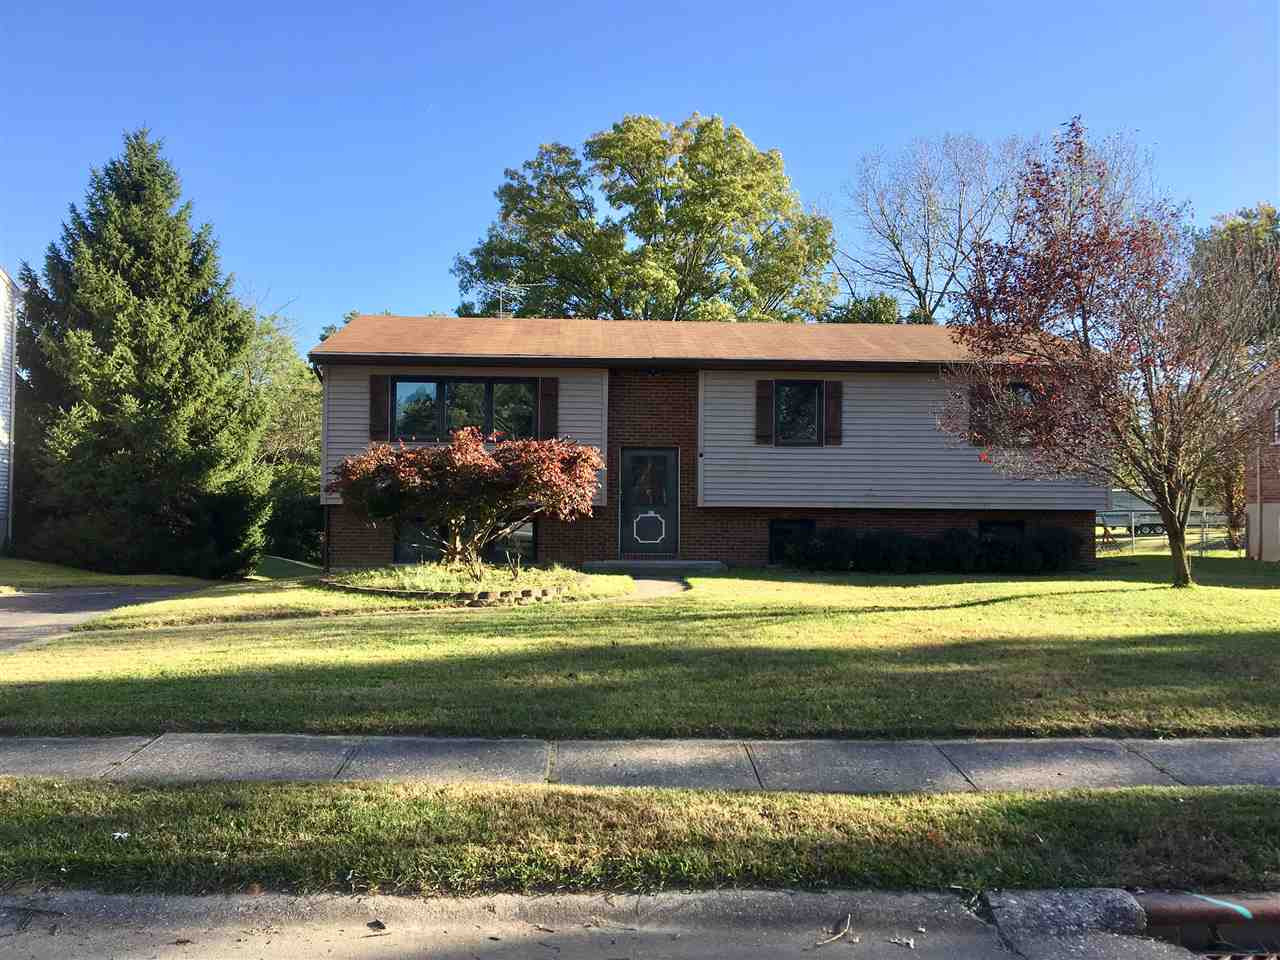 Photo 1 for 831 Fawnhill Dr Edgewood, KY 41017